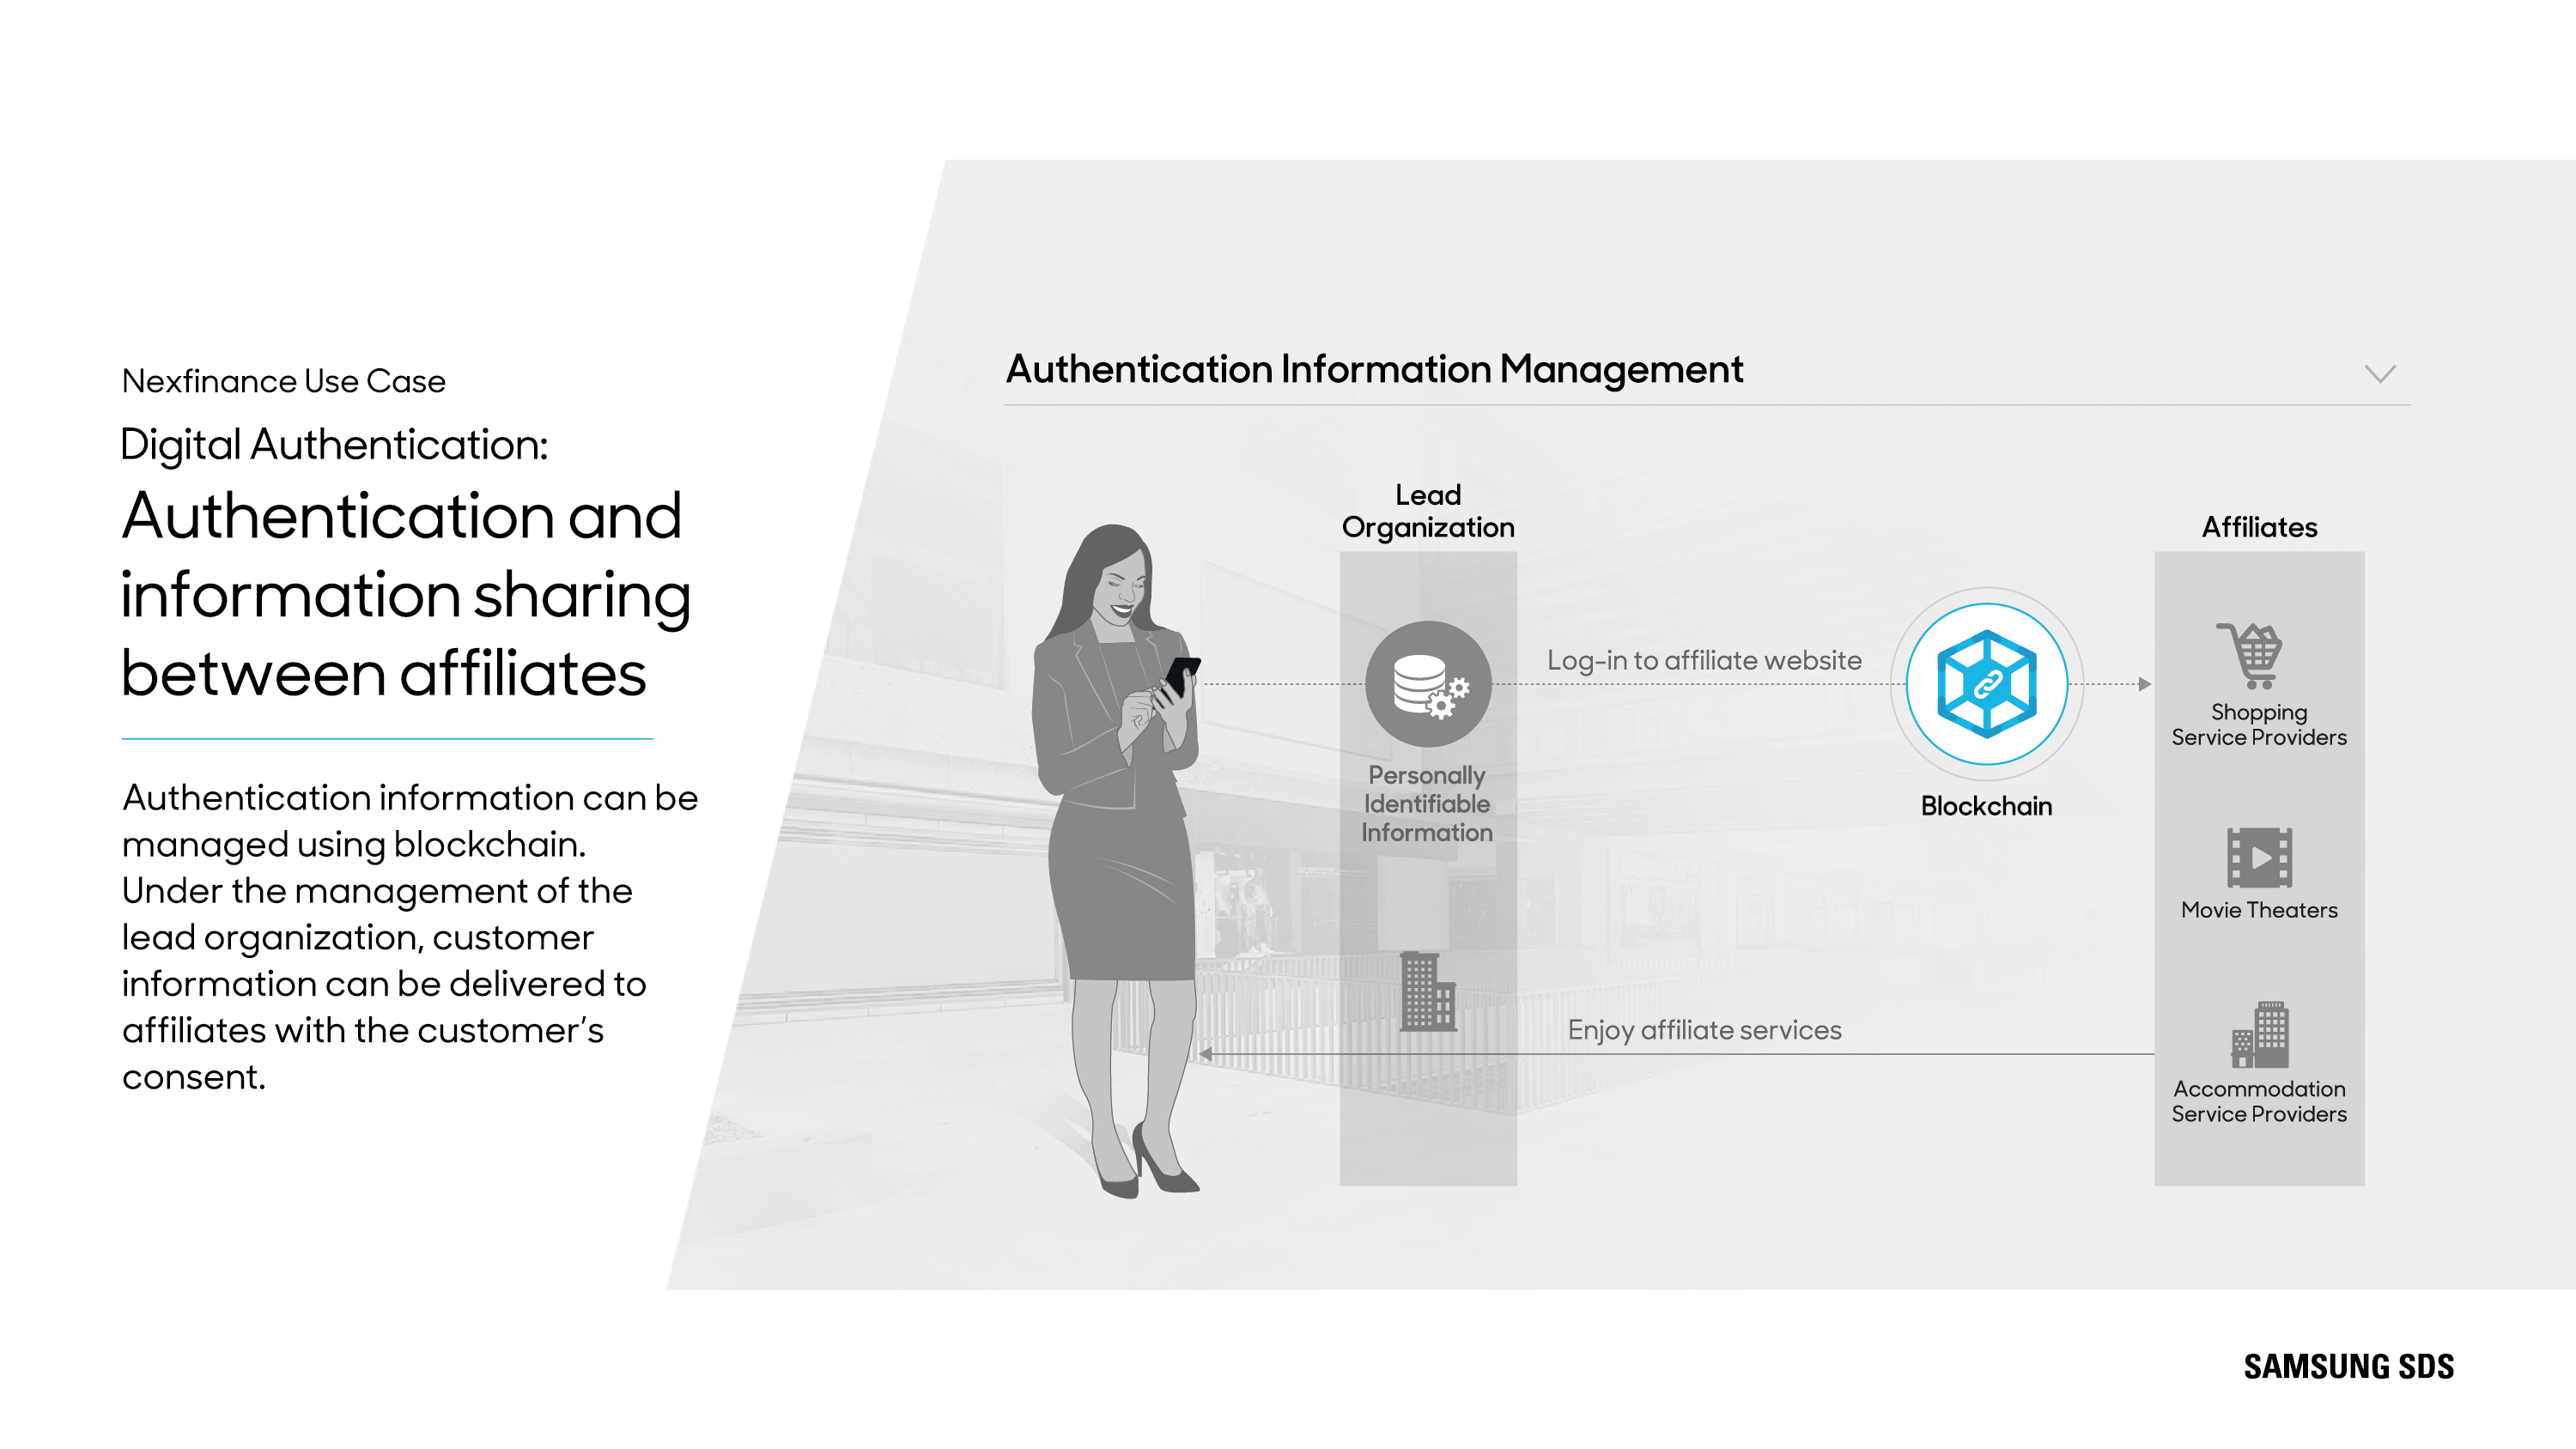 Authentication and information sharing between affiliates   Authentication information can be managed using blockchain. Under the management of the lead organization, customer information can be delivered to affiliates with the customer's consent.